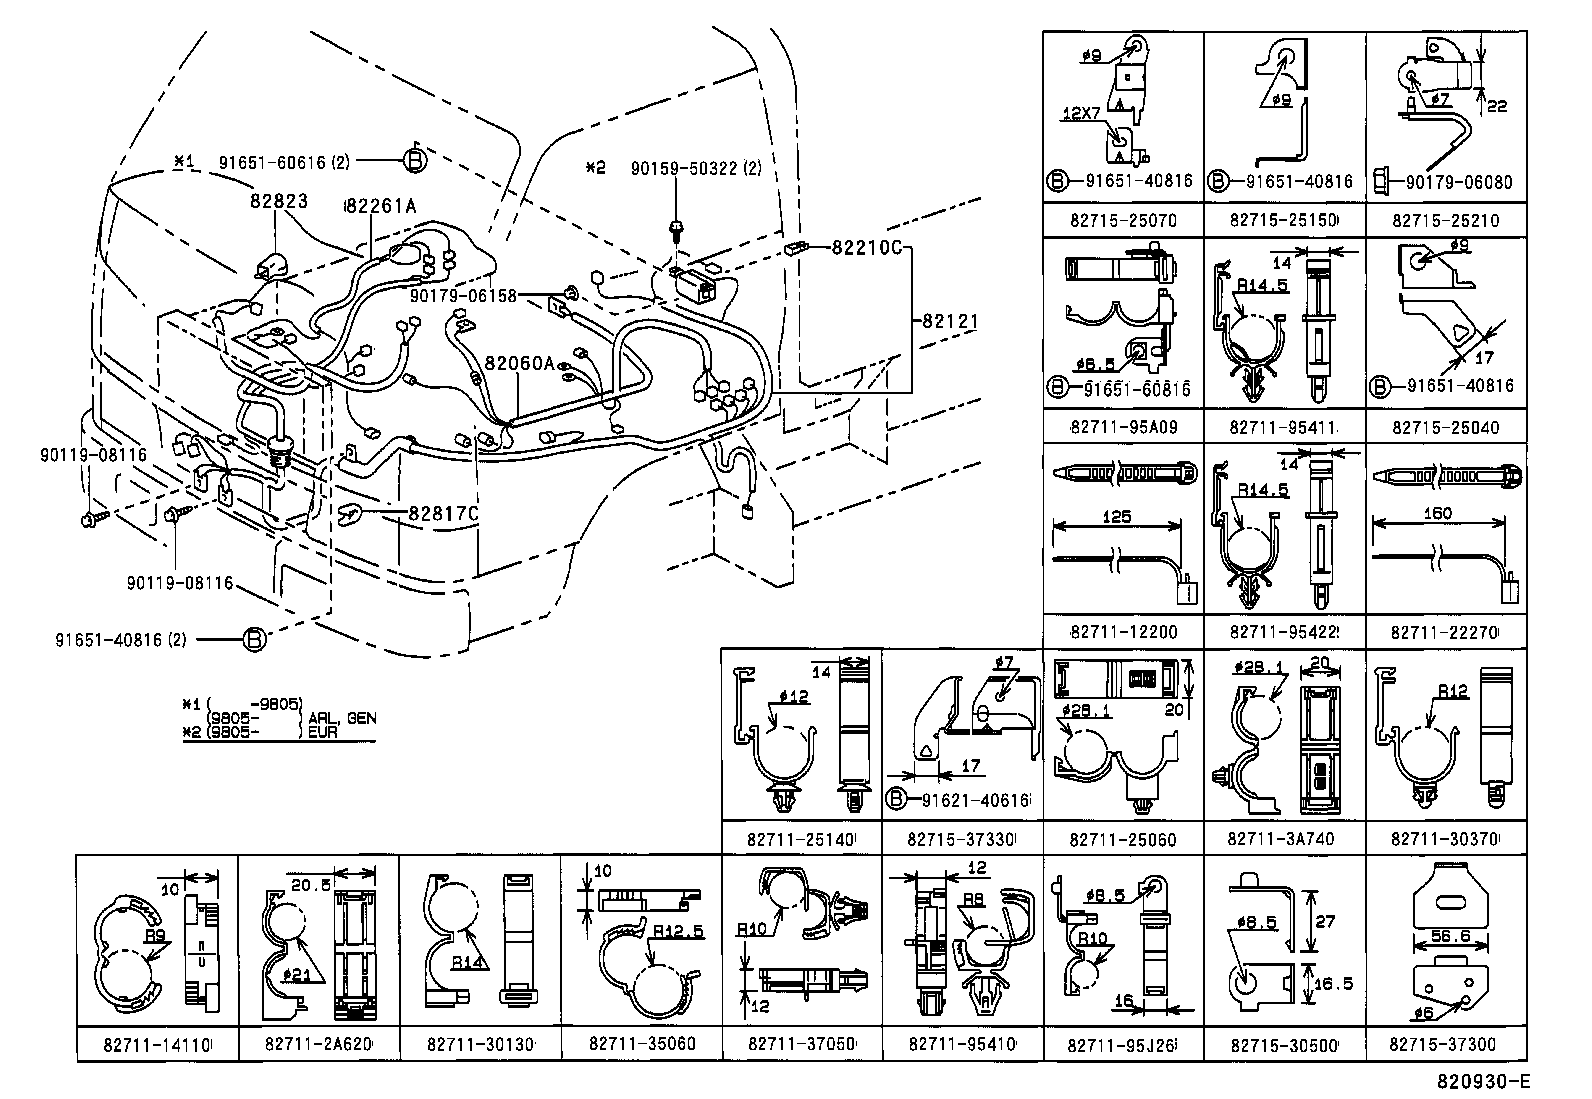 Toyota Coaster Wiring Diagram